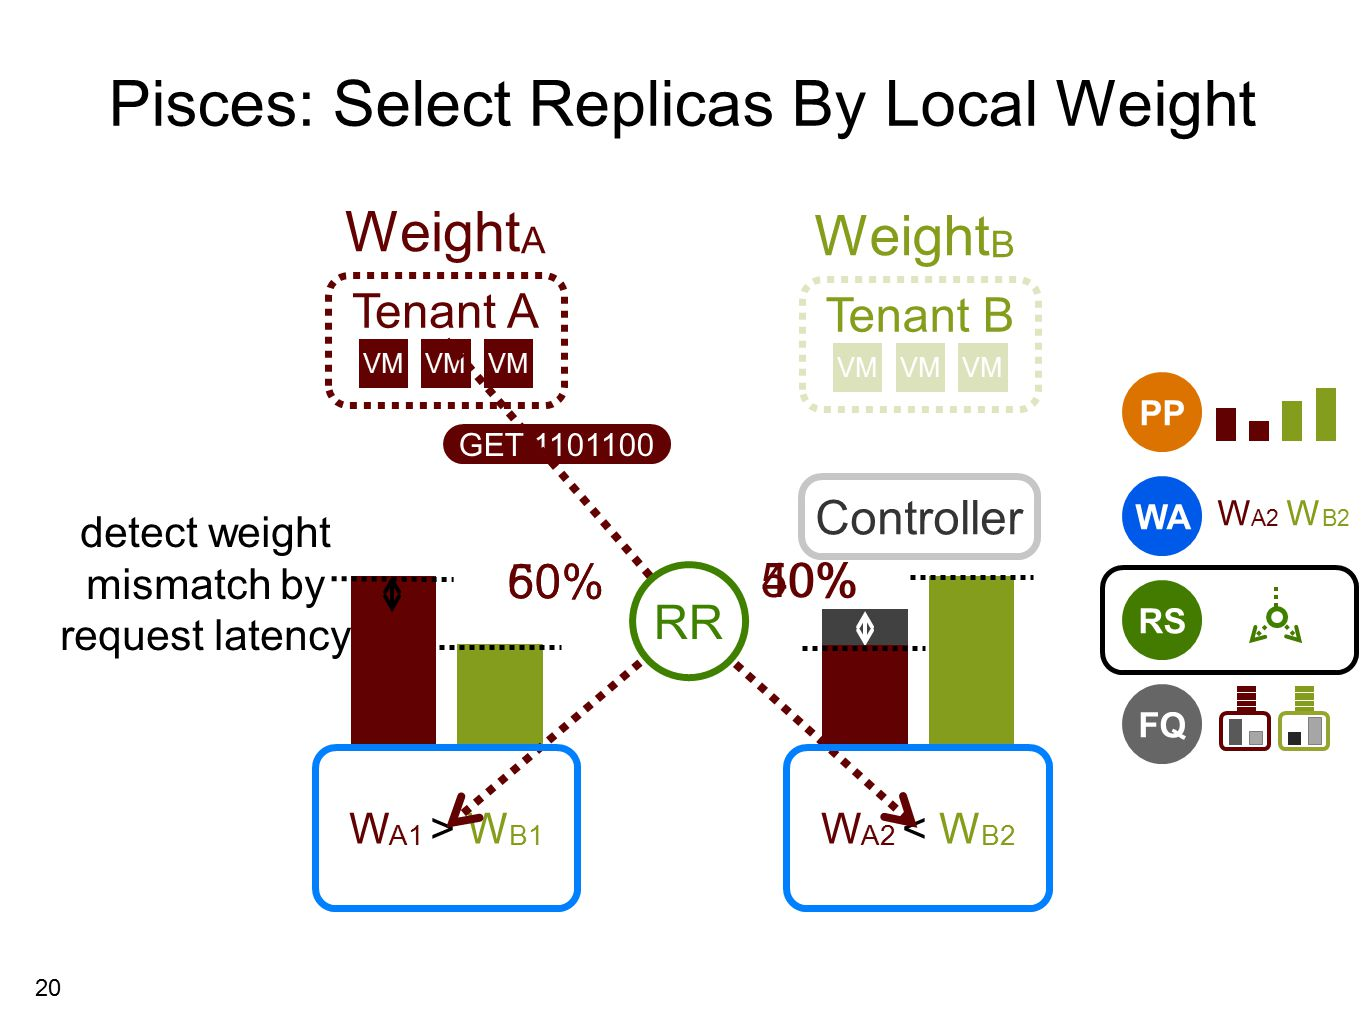 20 Tenant A Pisces: Select Replicas By Local Weight 60% 40% detect weight mismatch by request latency Tenant B VM Weight B Controller 50% RS PP WA W A